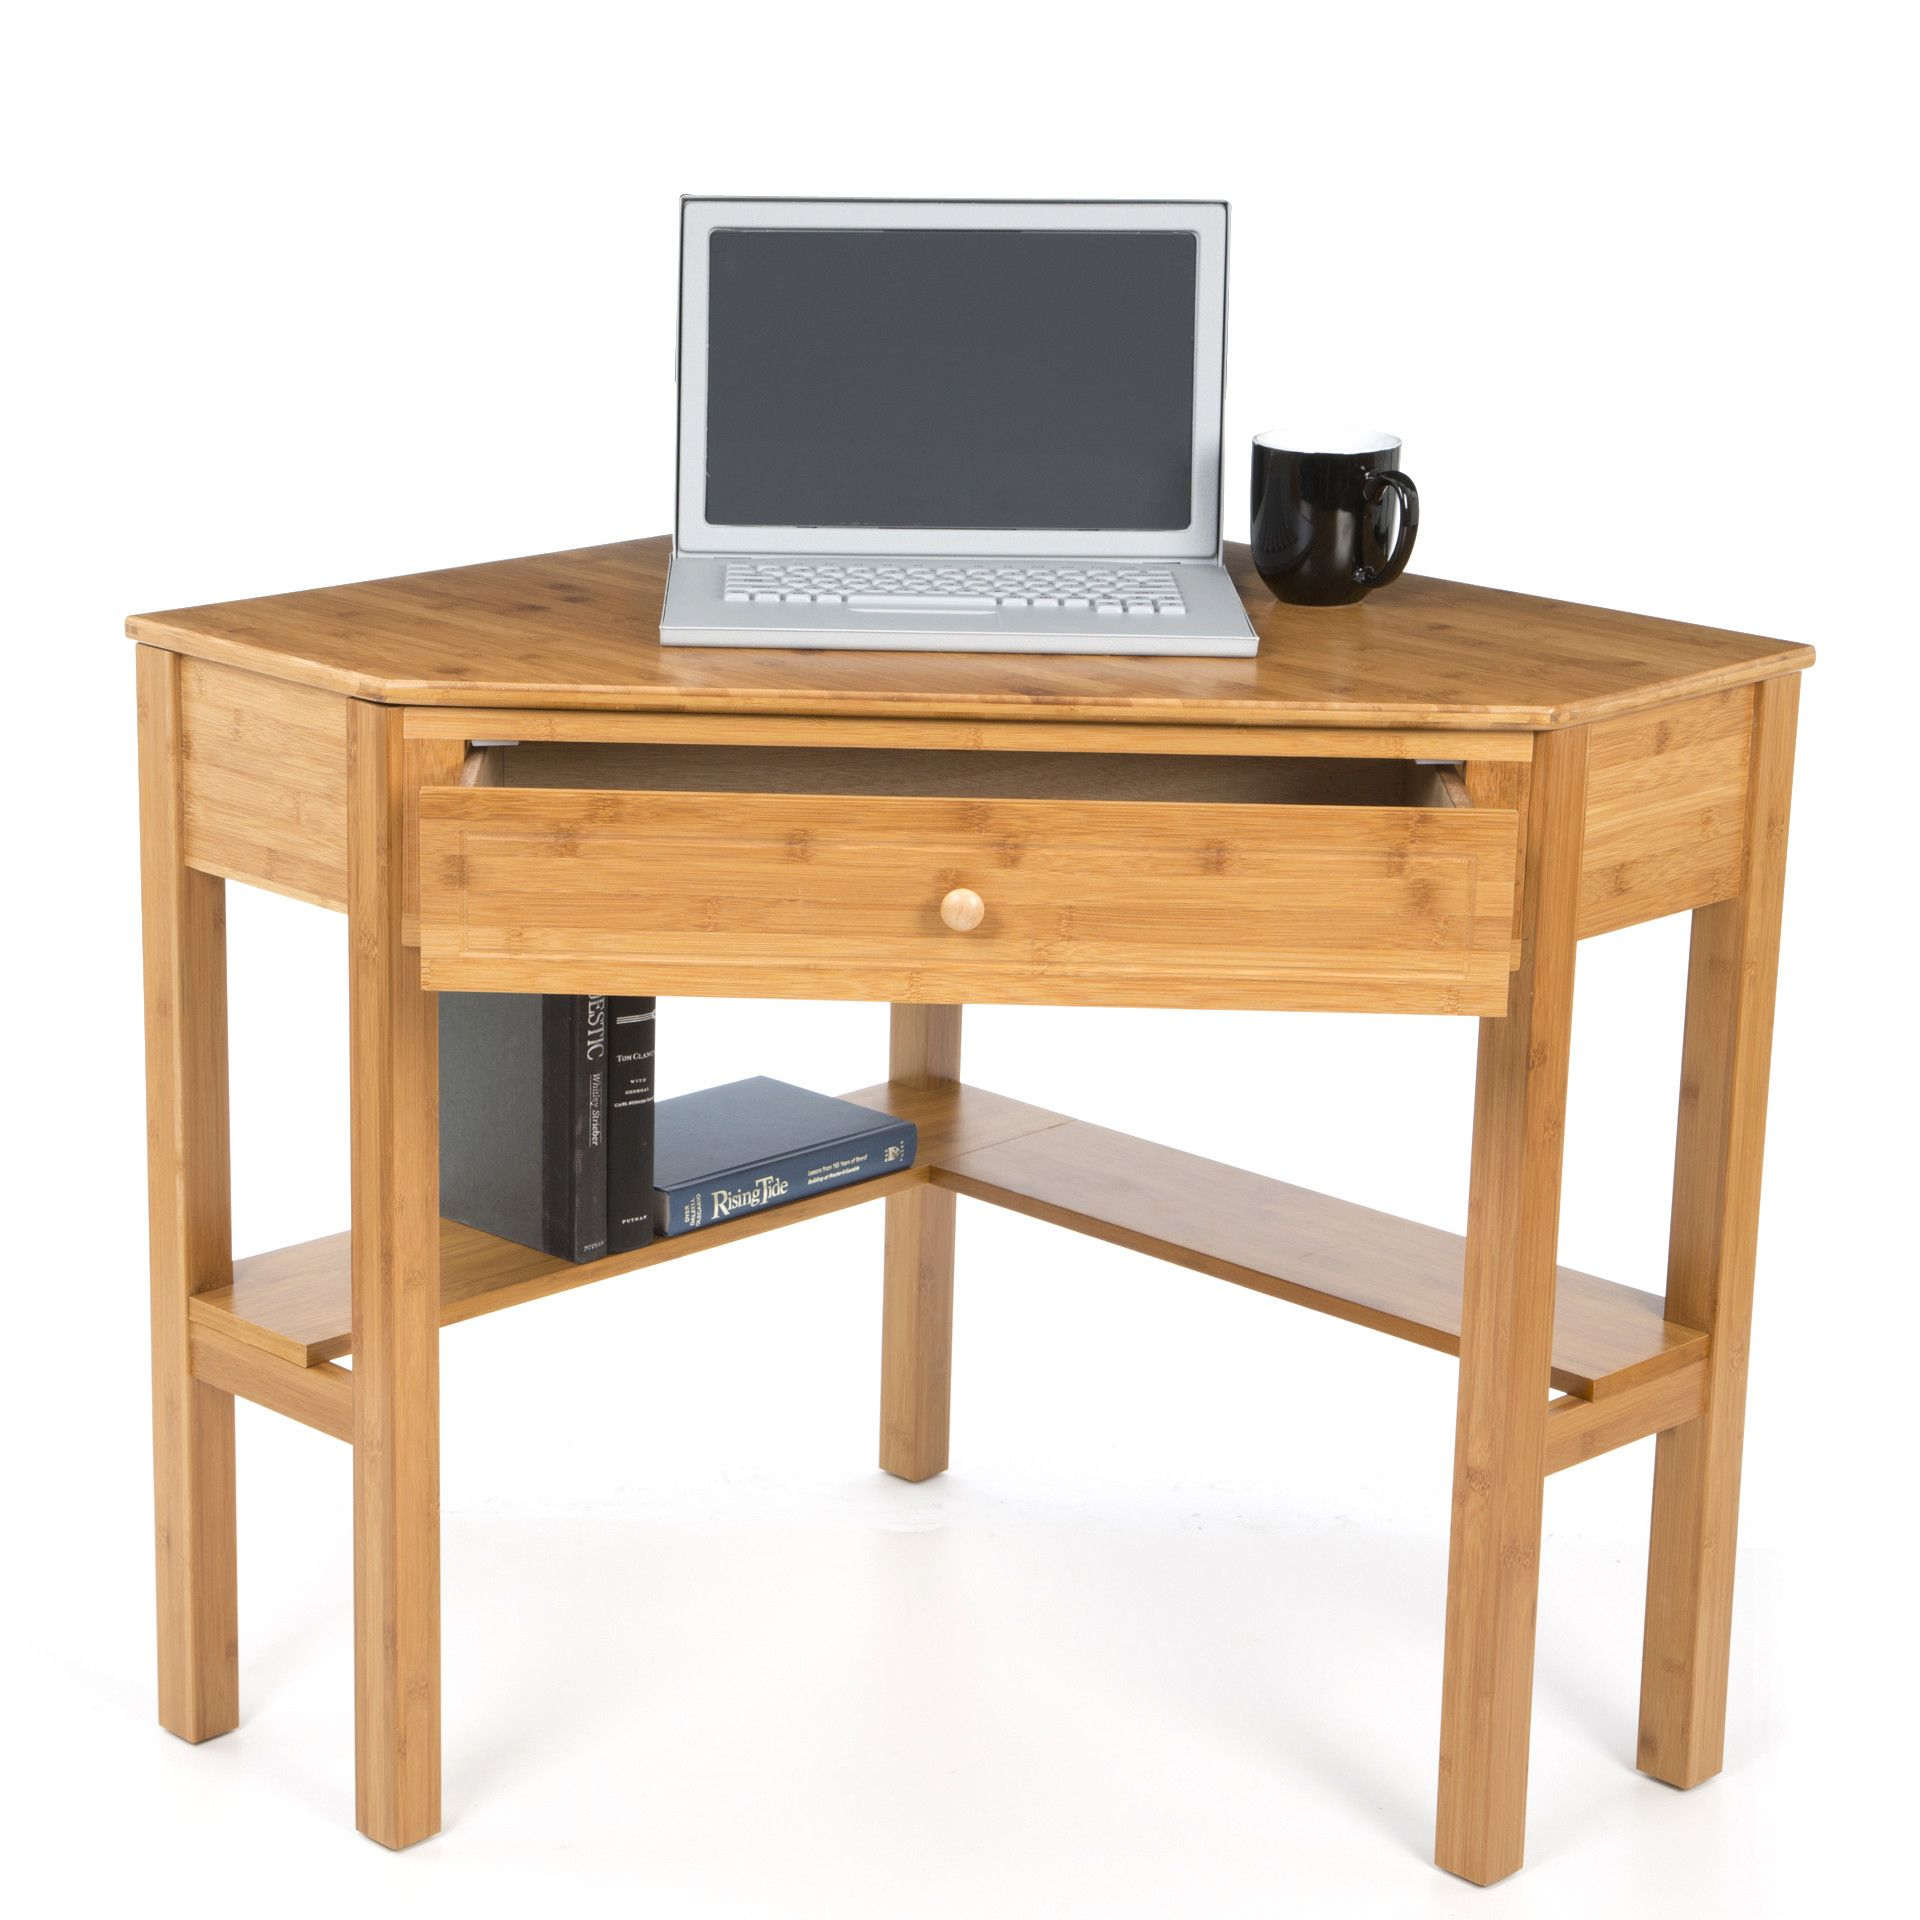 Bamboo Corner Desk Computer Desk With Wheels